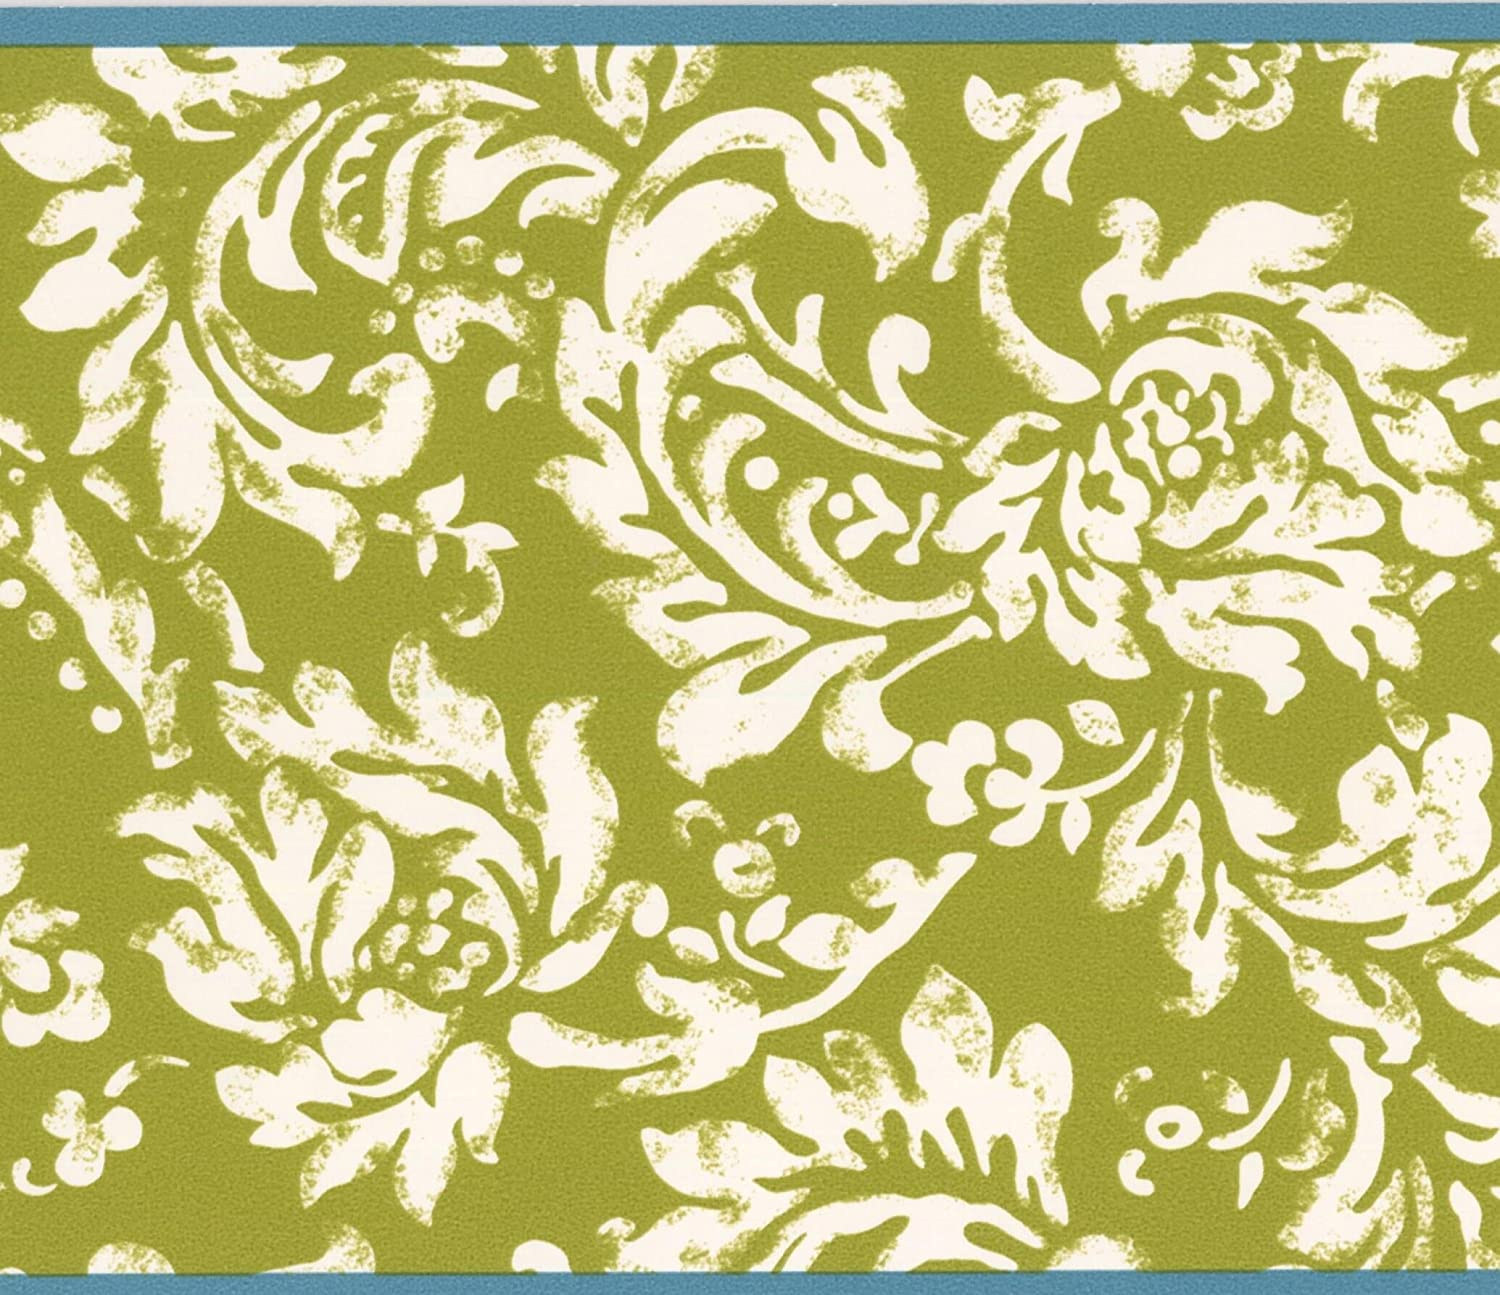 Modern White Floral Pattern Mustard Yellow Damask Wallpaper Border